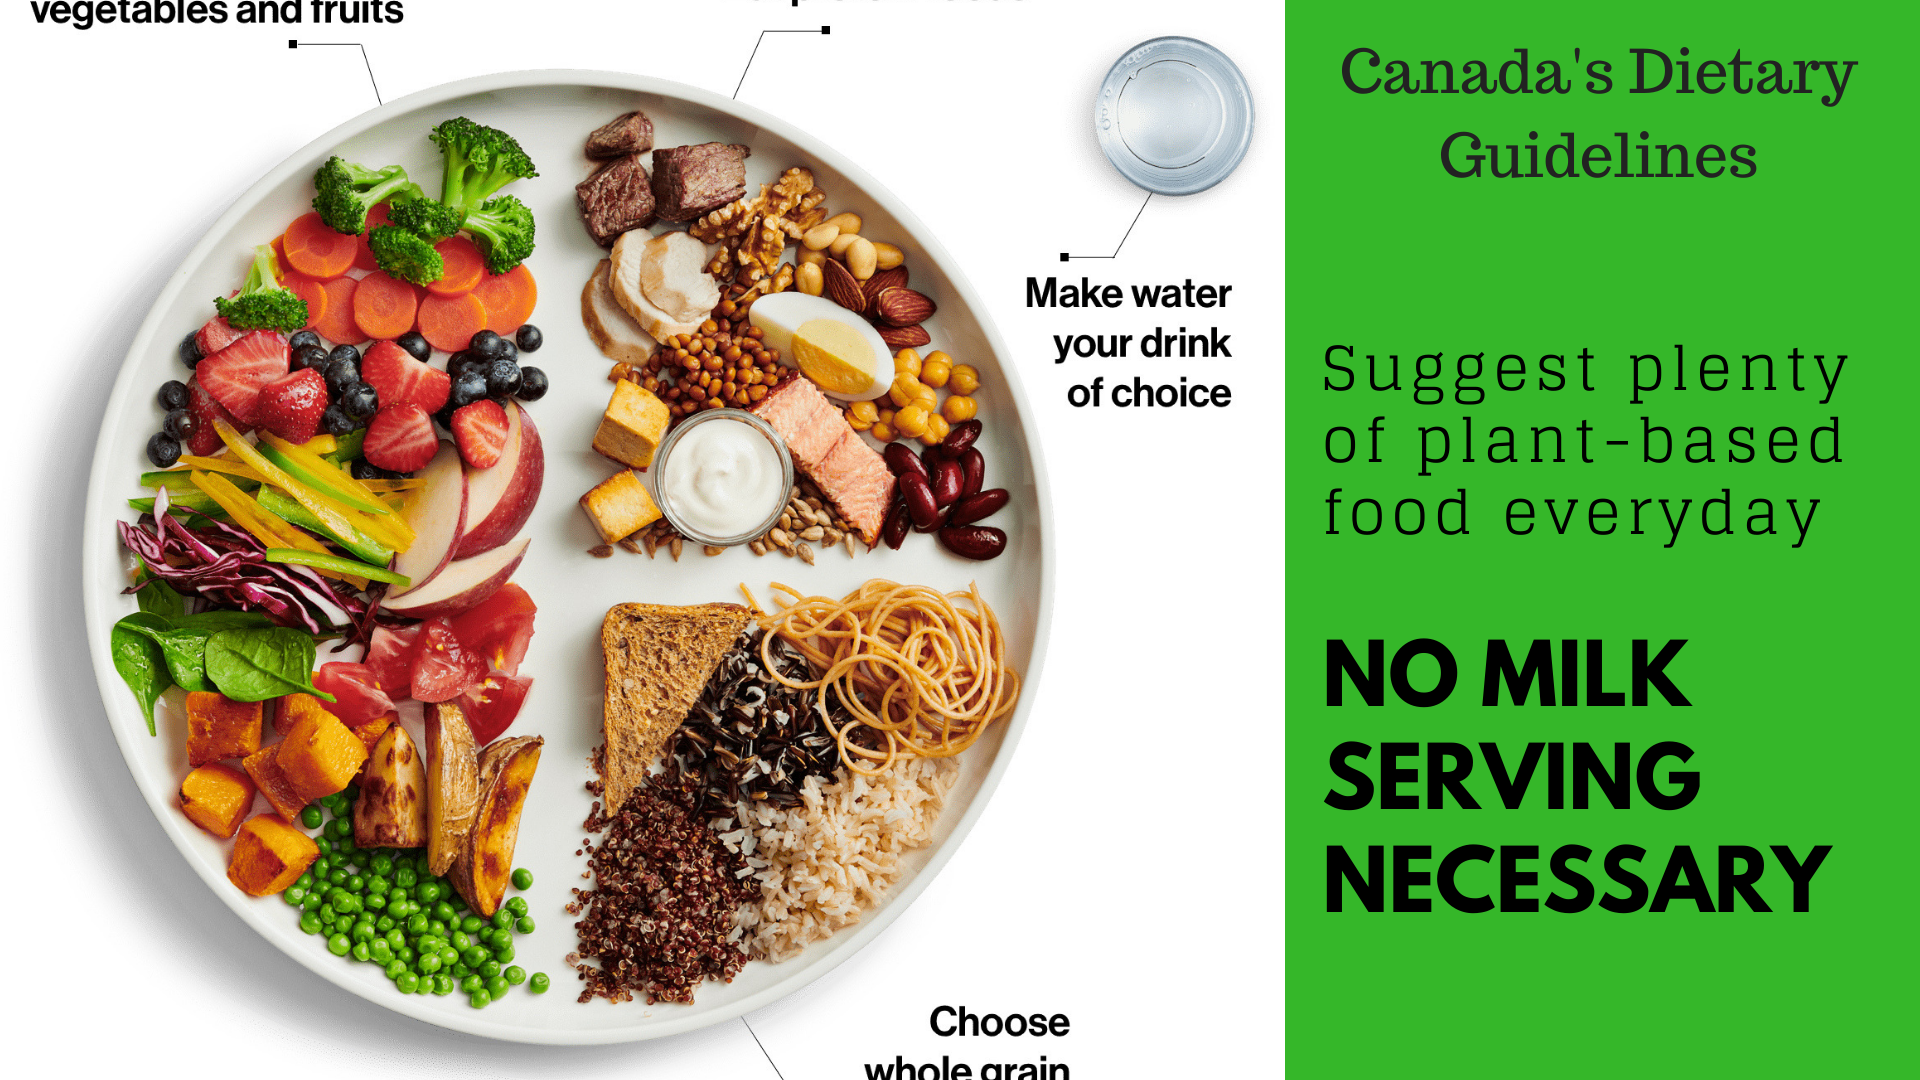 Canada's Dietary Guidelines